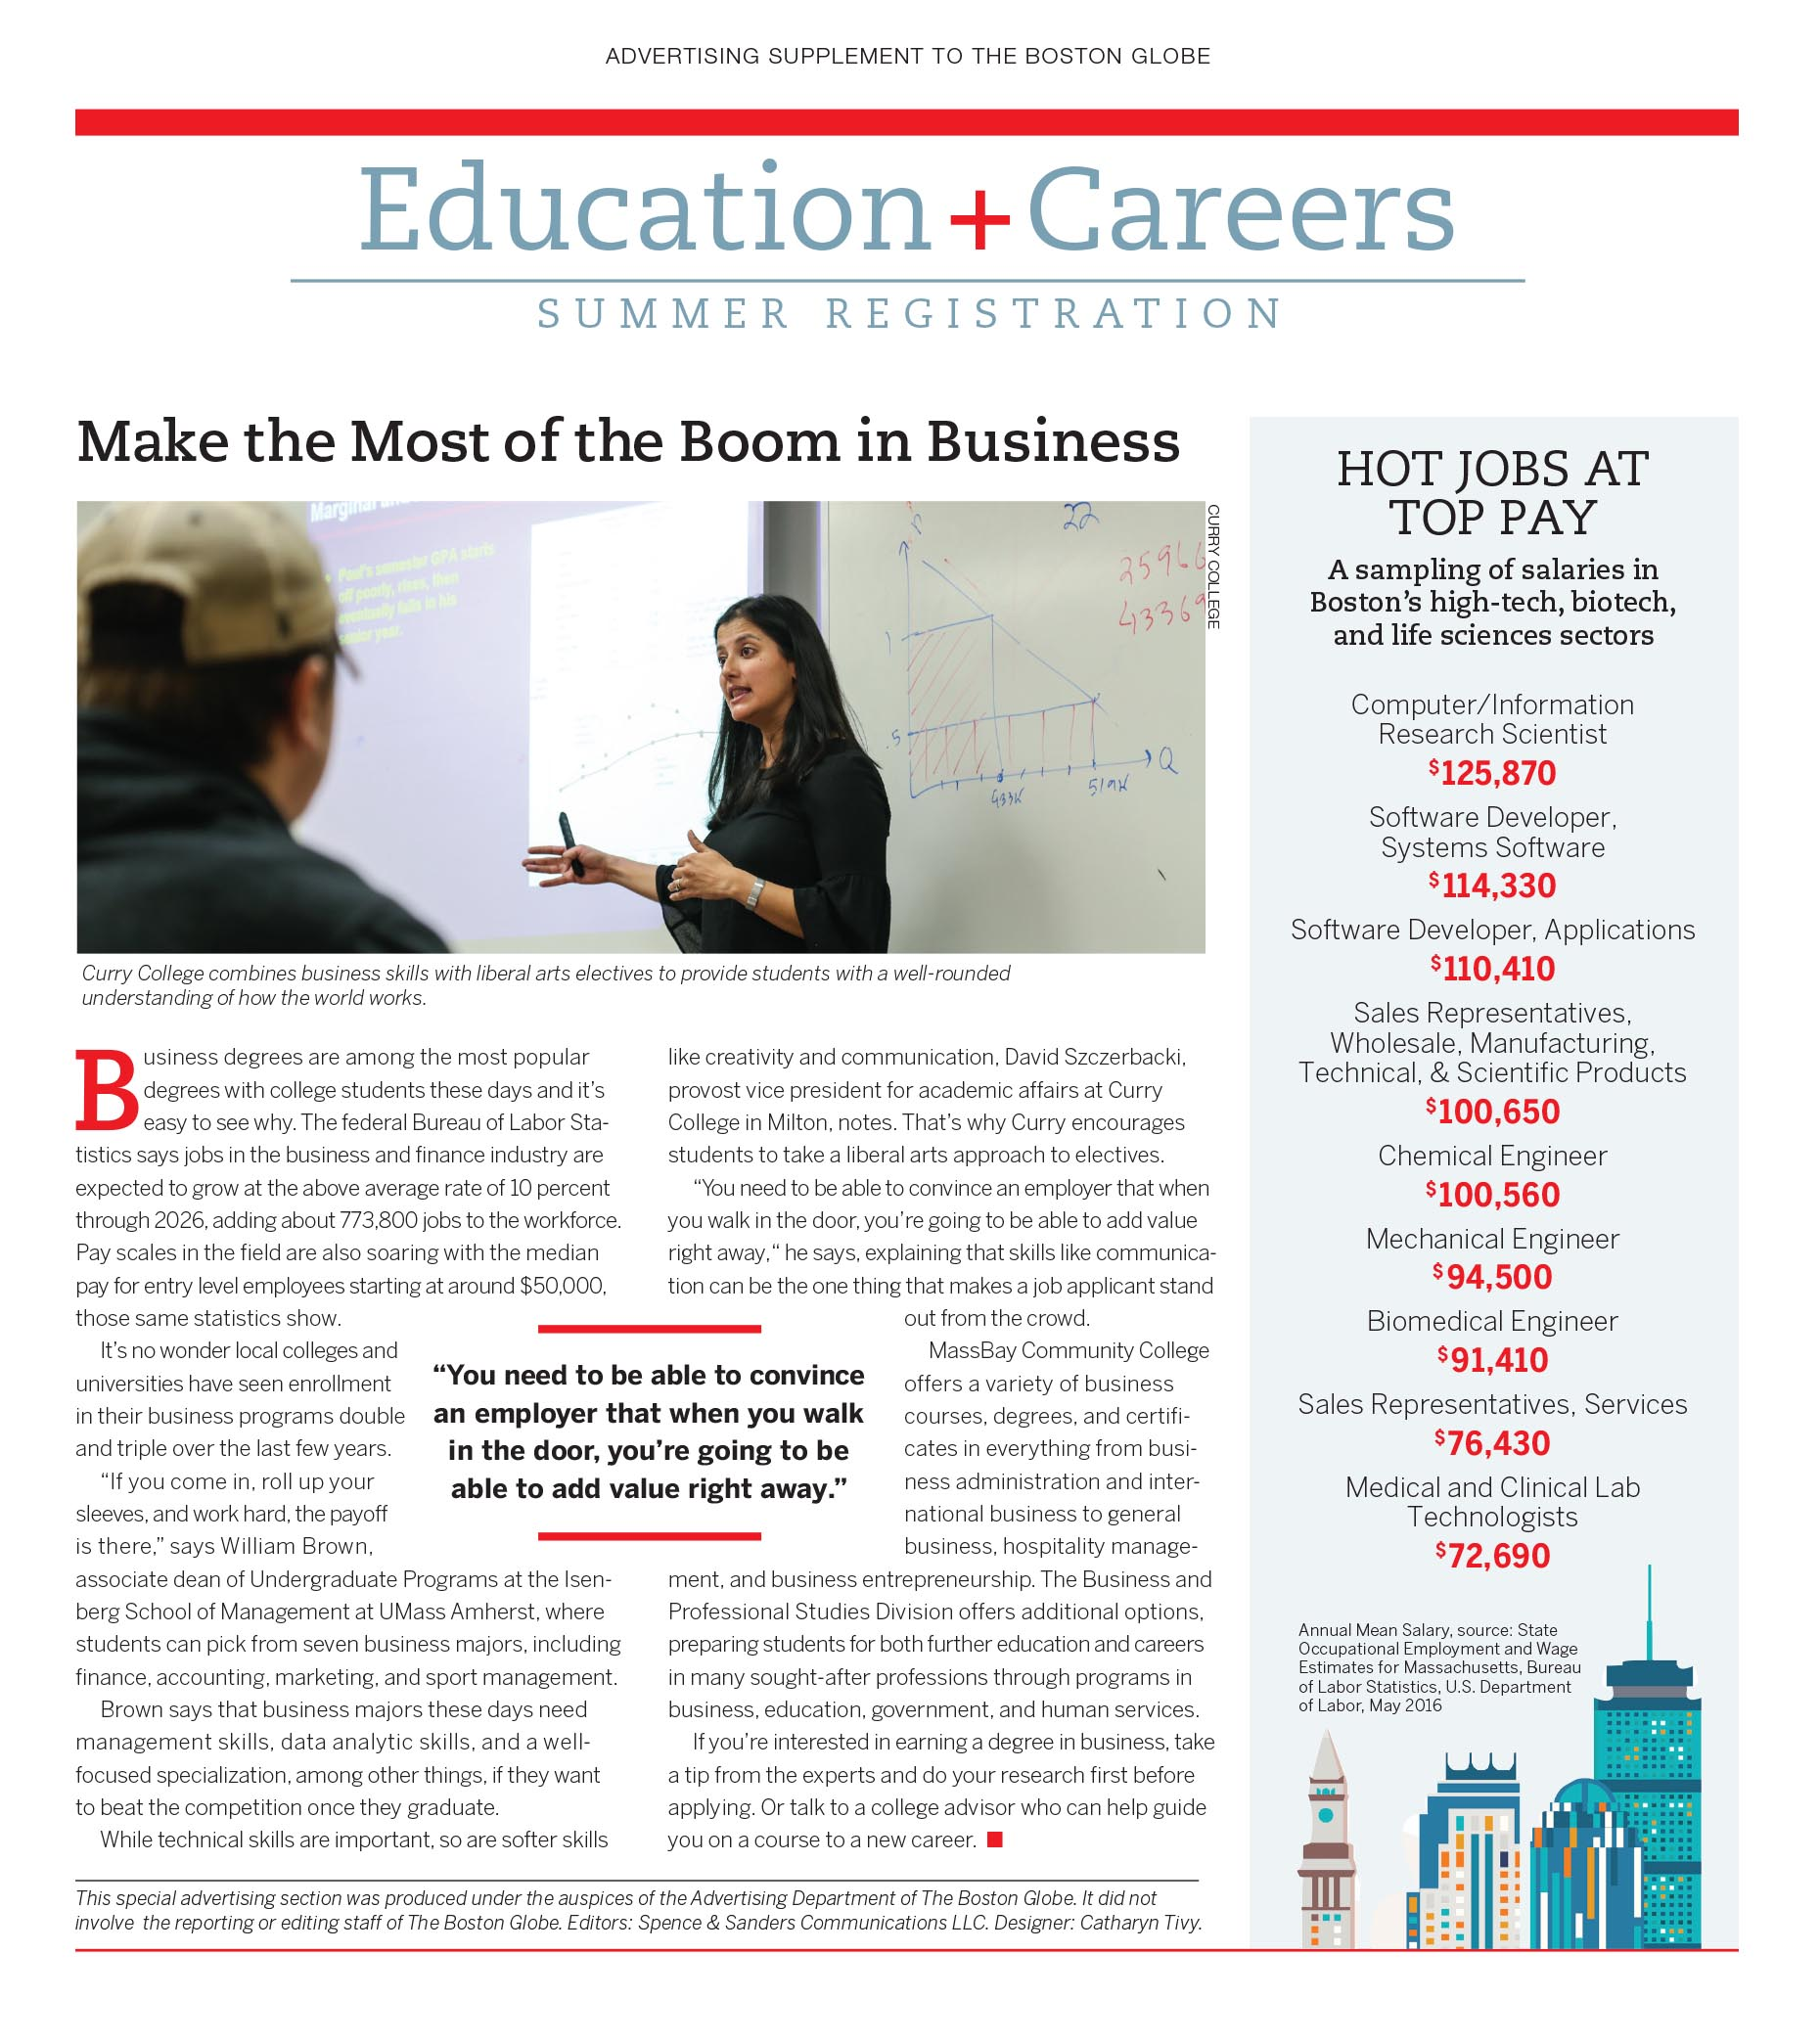 Education and Careers advertorial